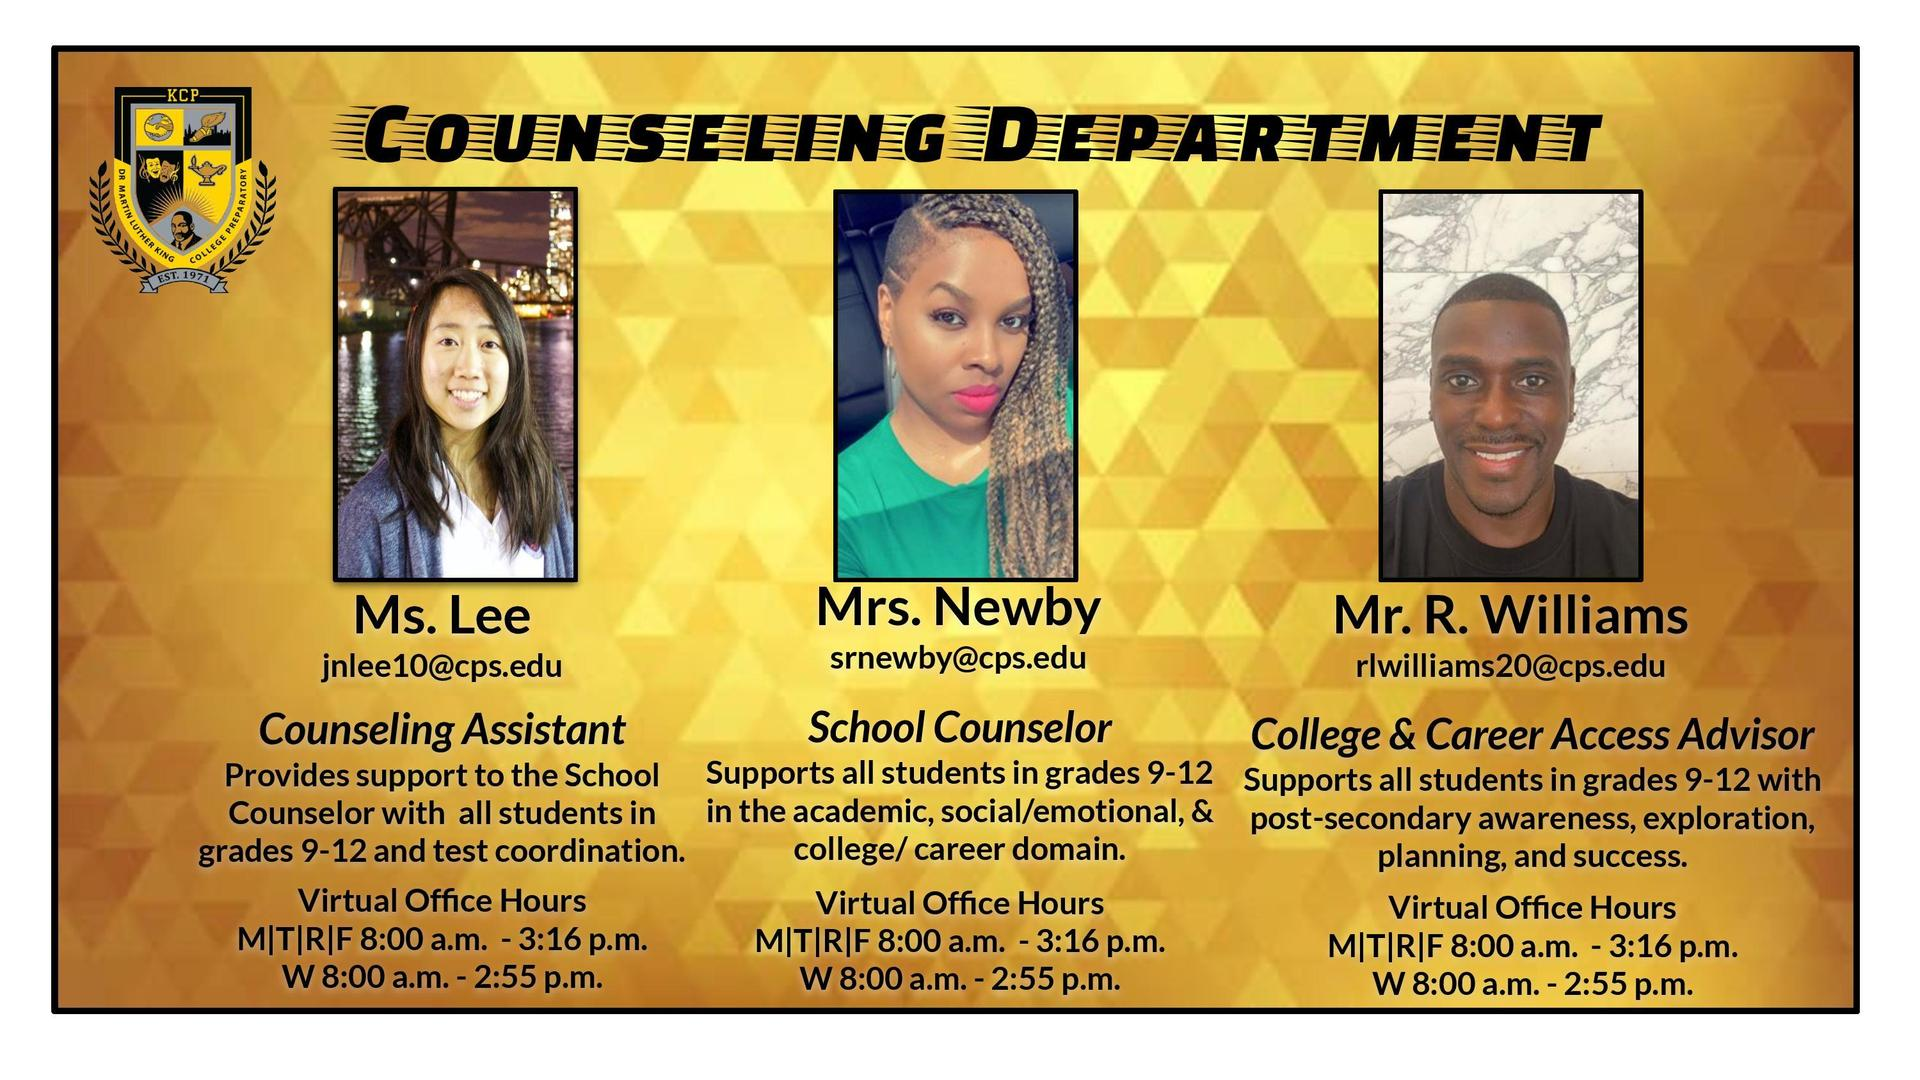 KCP Counseling Department